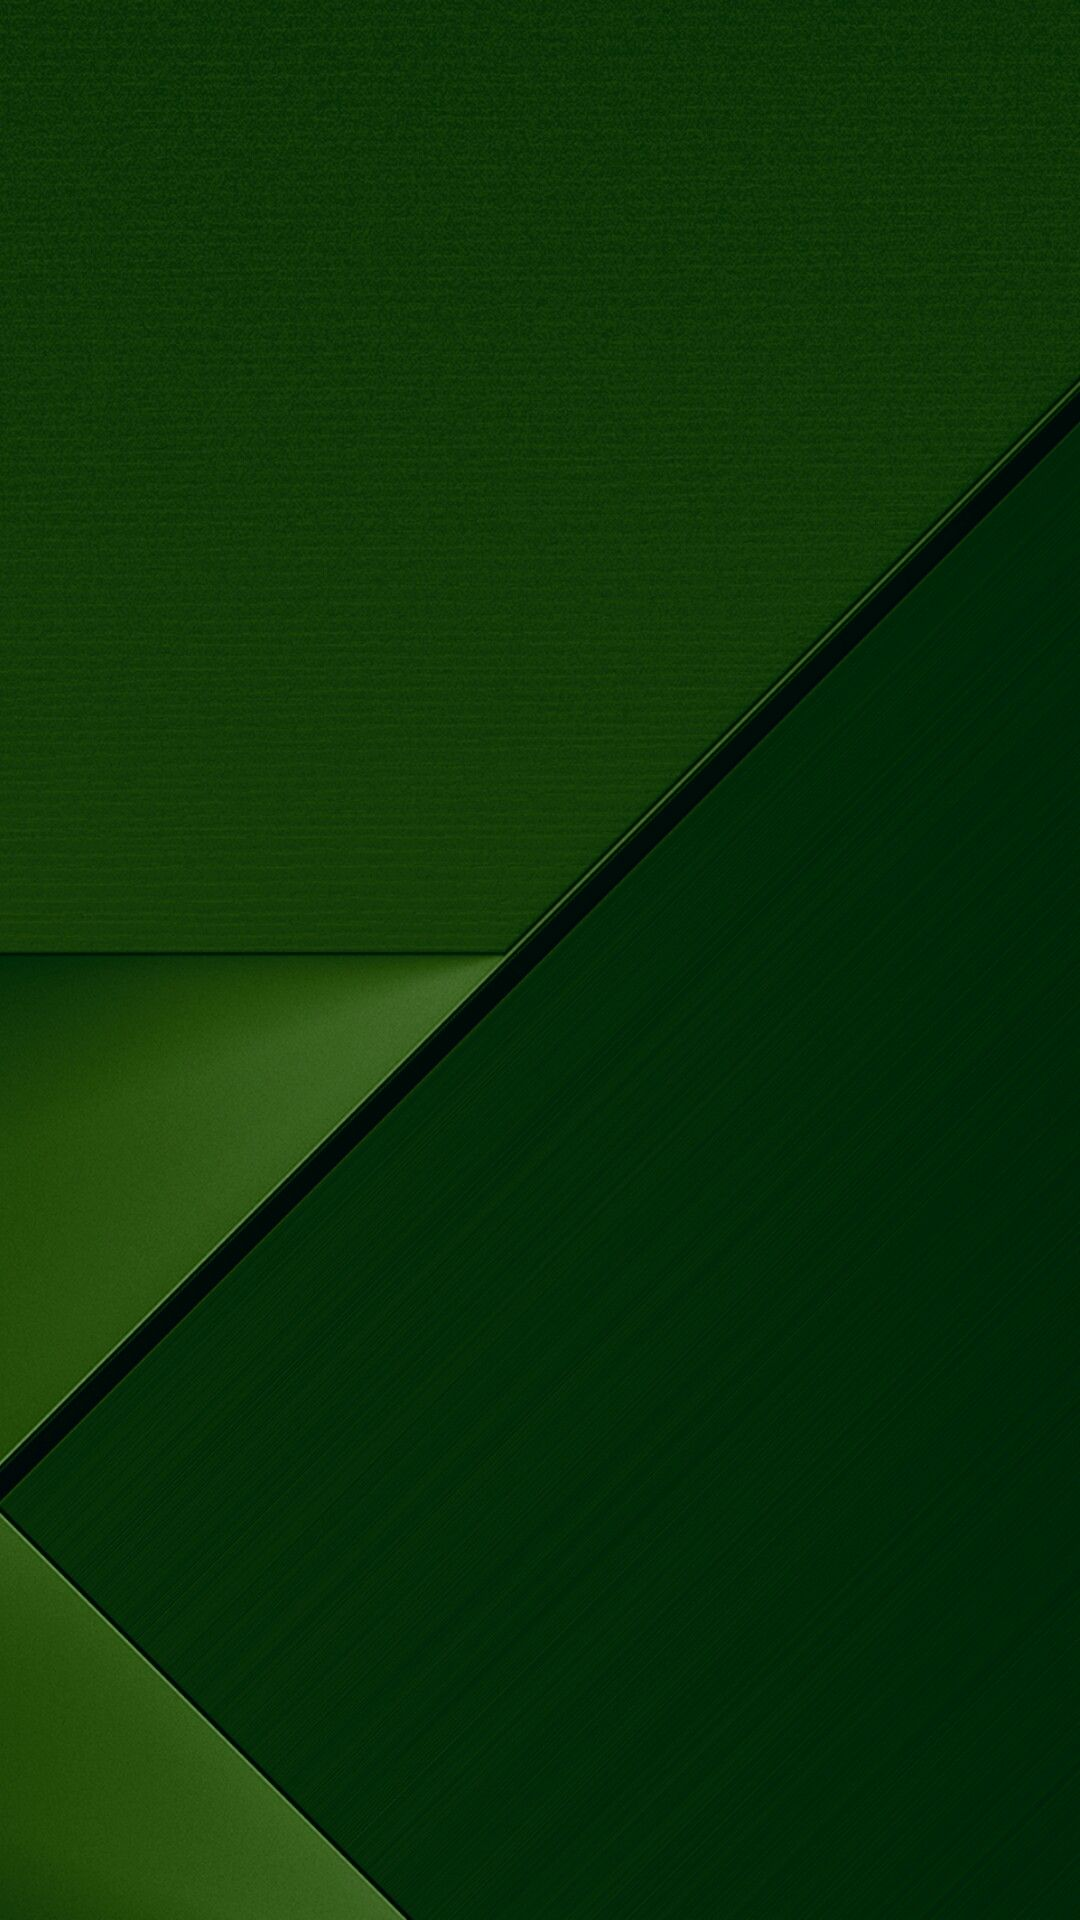 Green On Green Abstract Wallpaper With Images Xiaomi